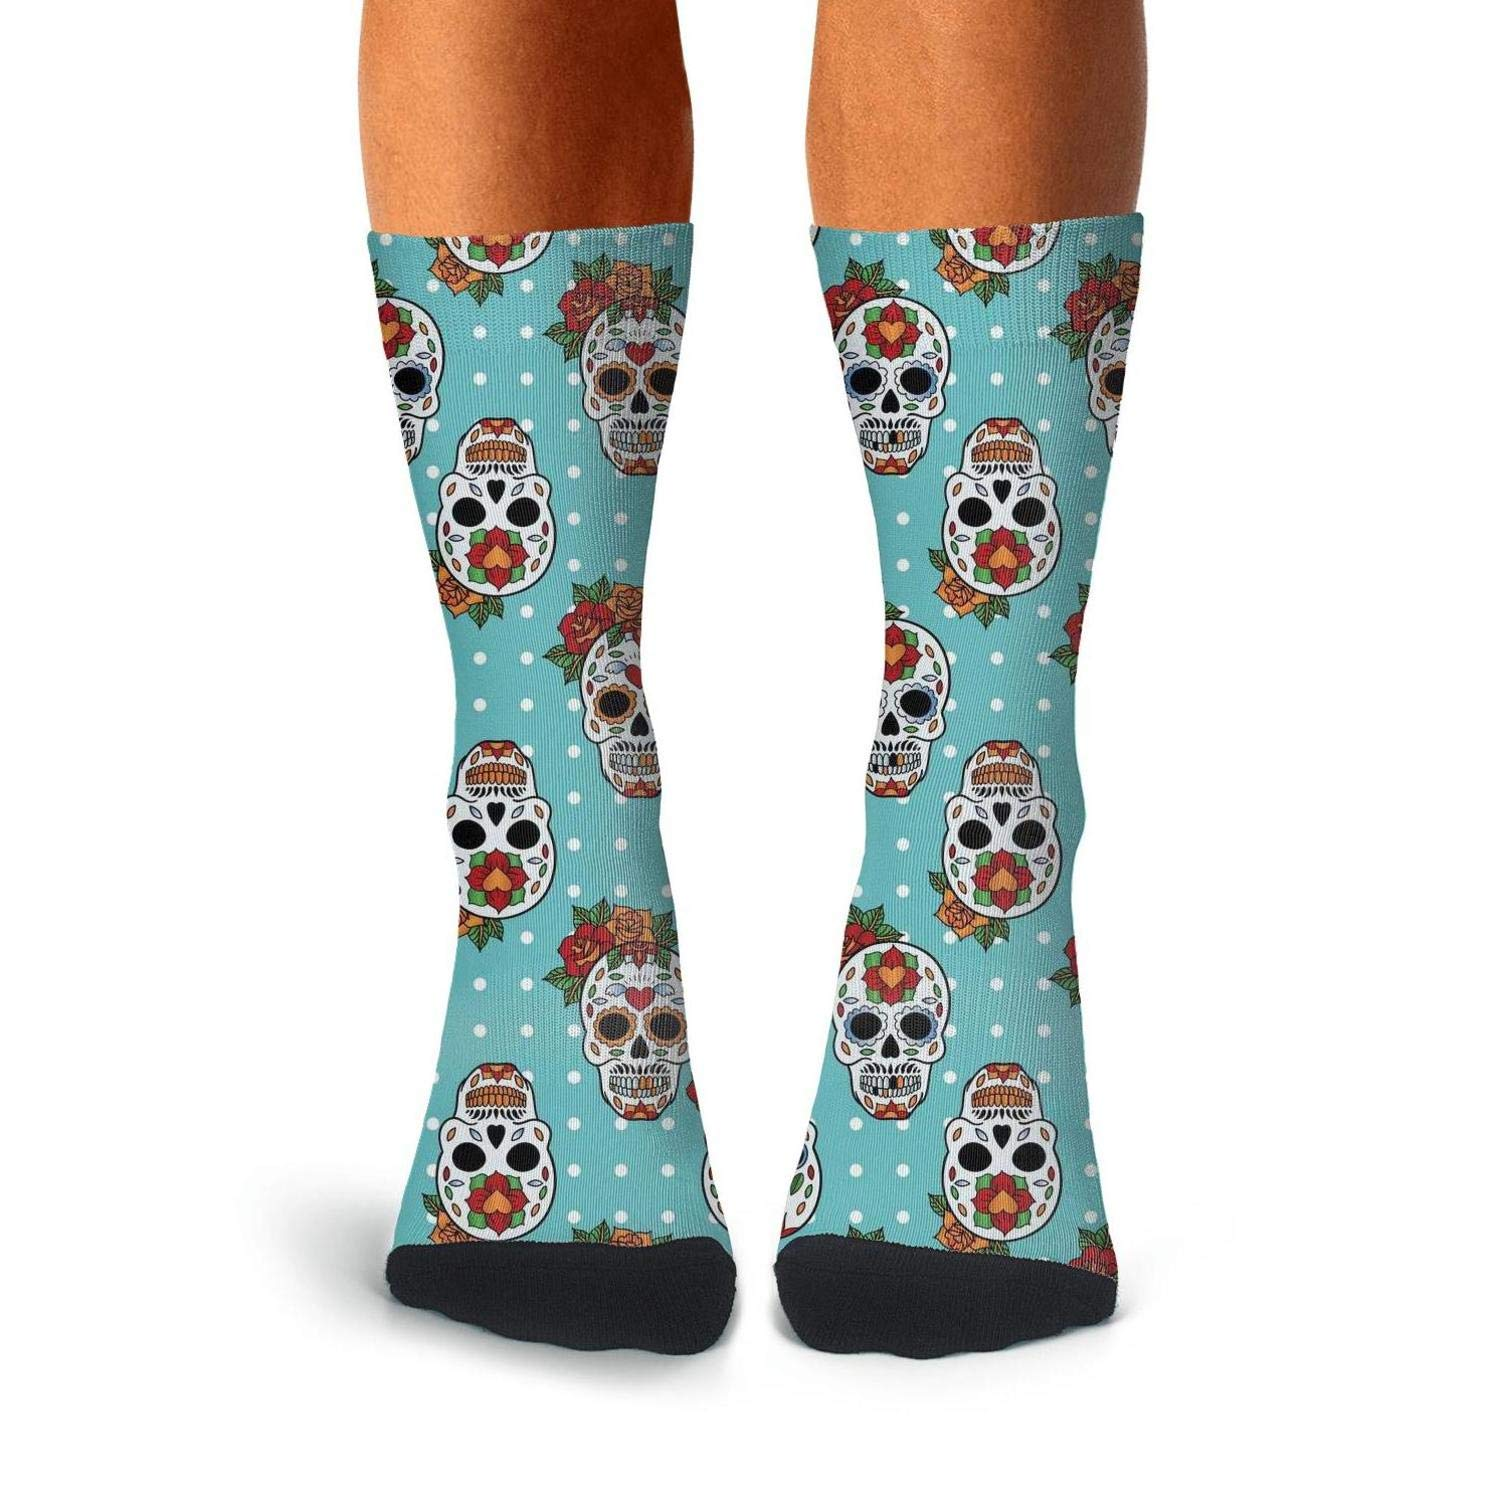 Knee High Long Stockings KCOSSH Sugar Skull Novelty Calf Socks Cool Crew Sock For Mens